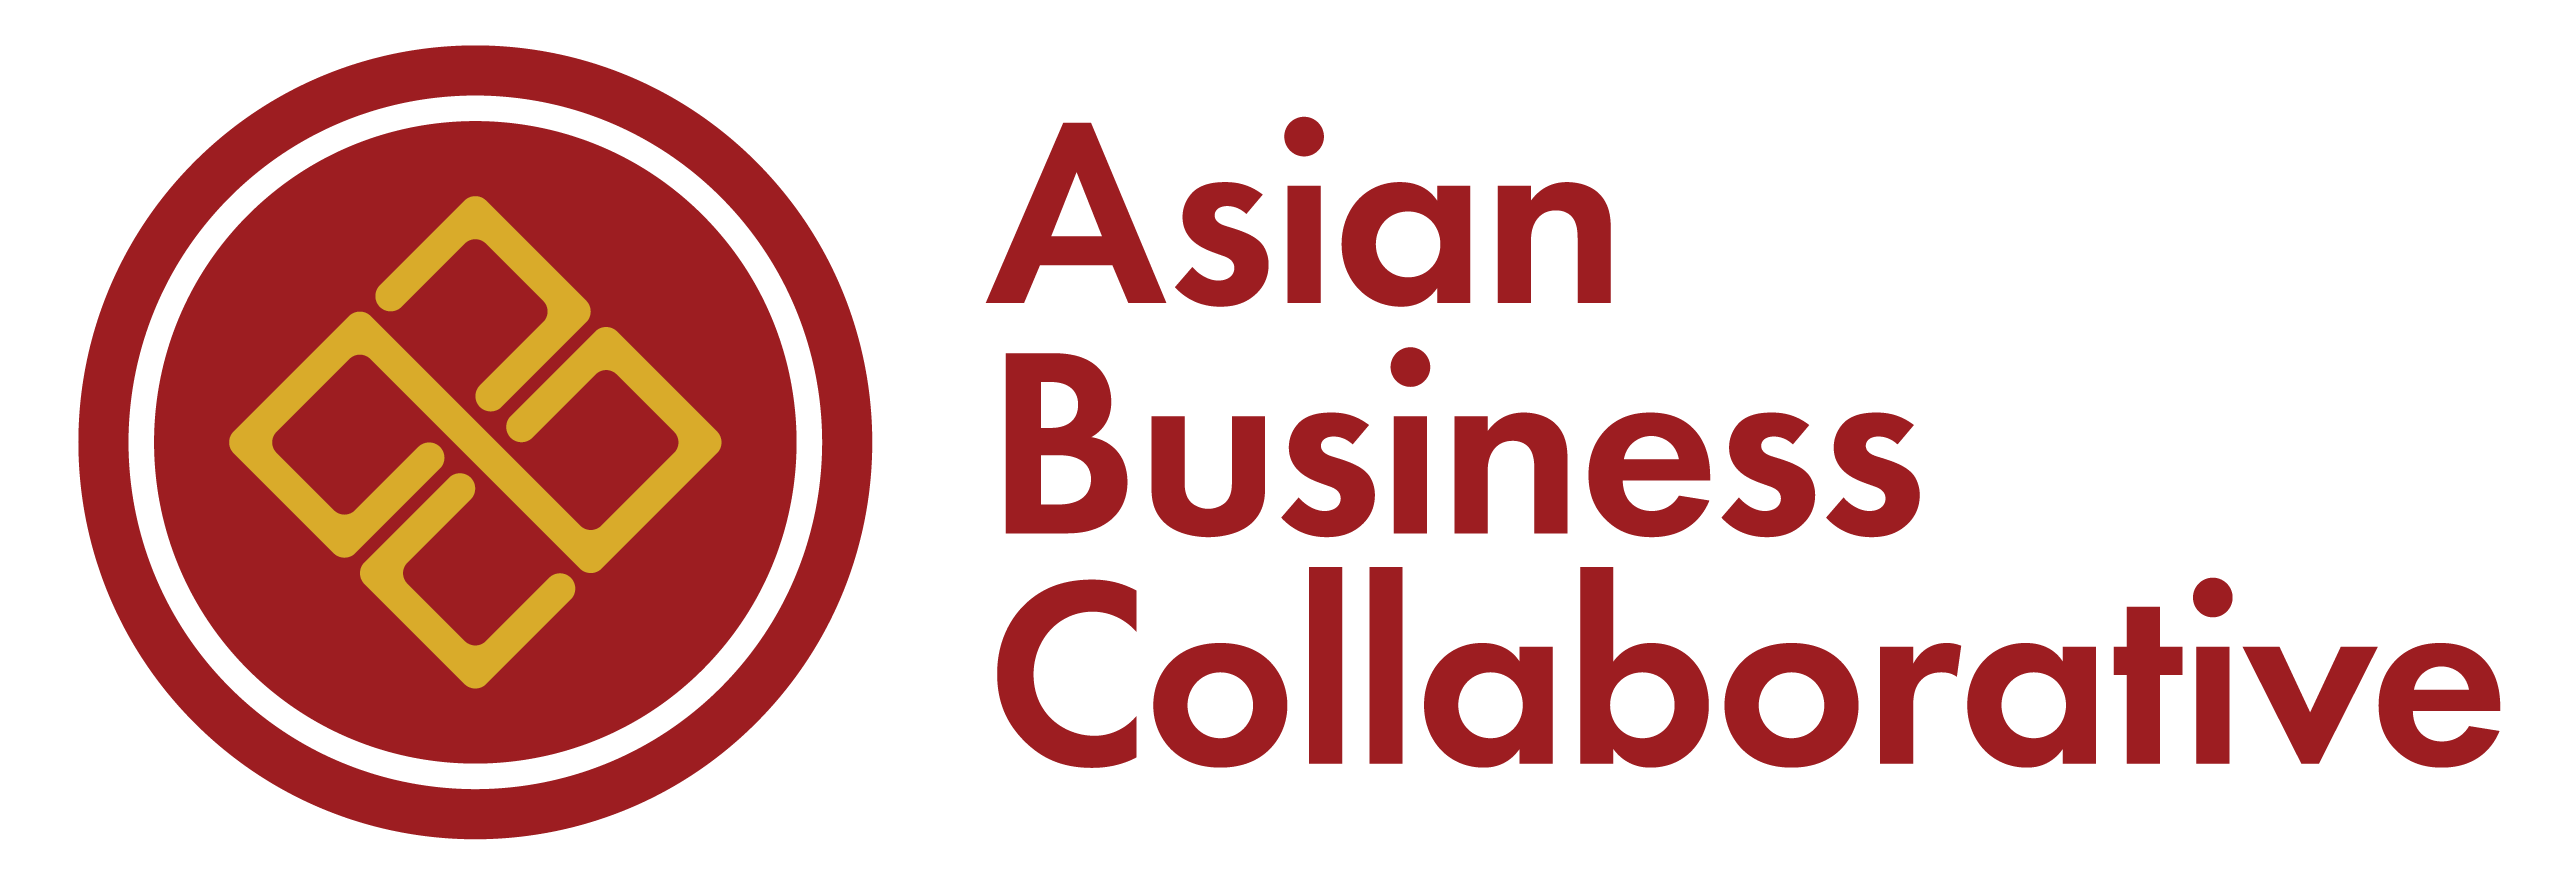 Asian Business Collaborative